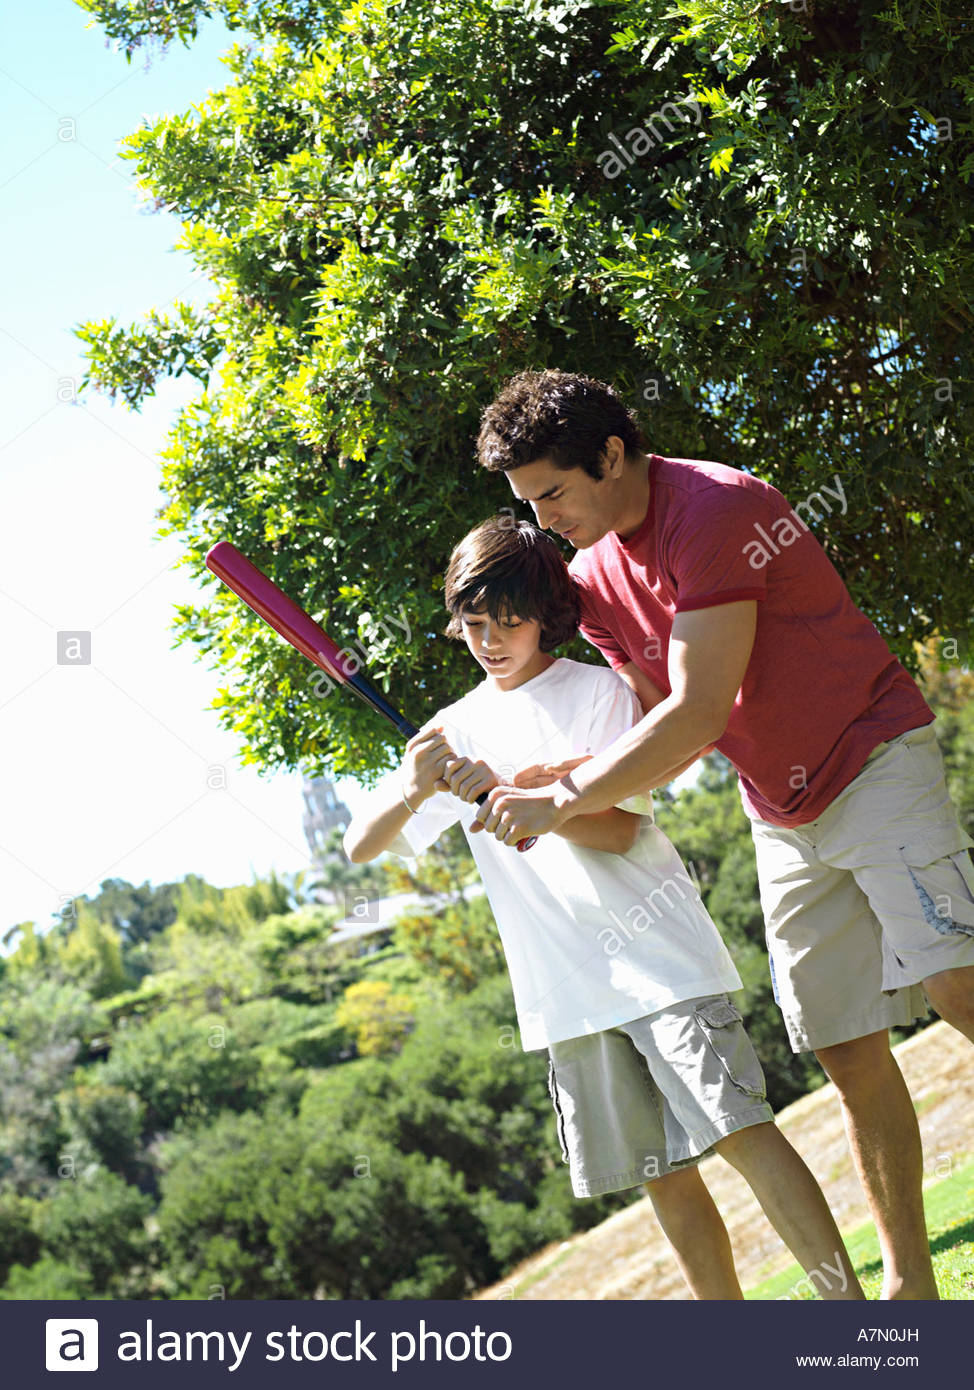 Father teaching son 10 12 how to hold baseball bat standing on grass in park tilt - Stock Image